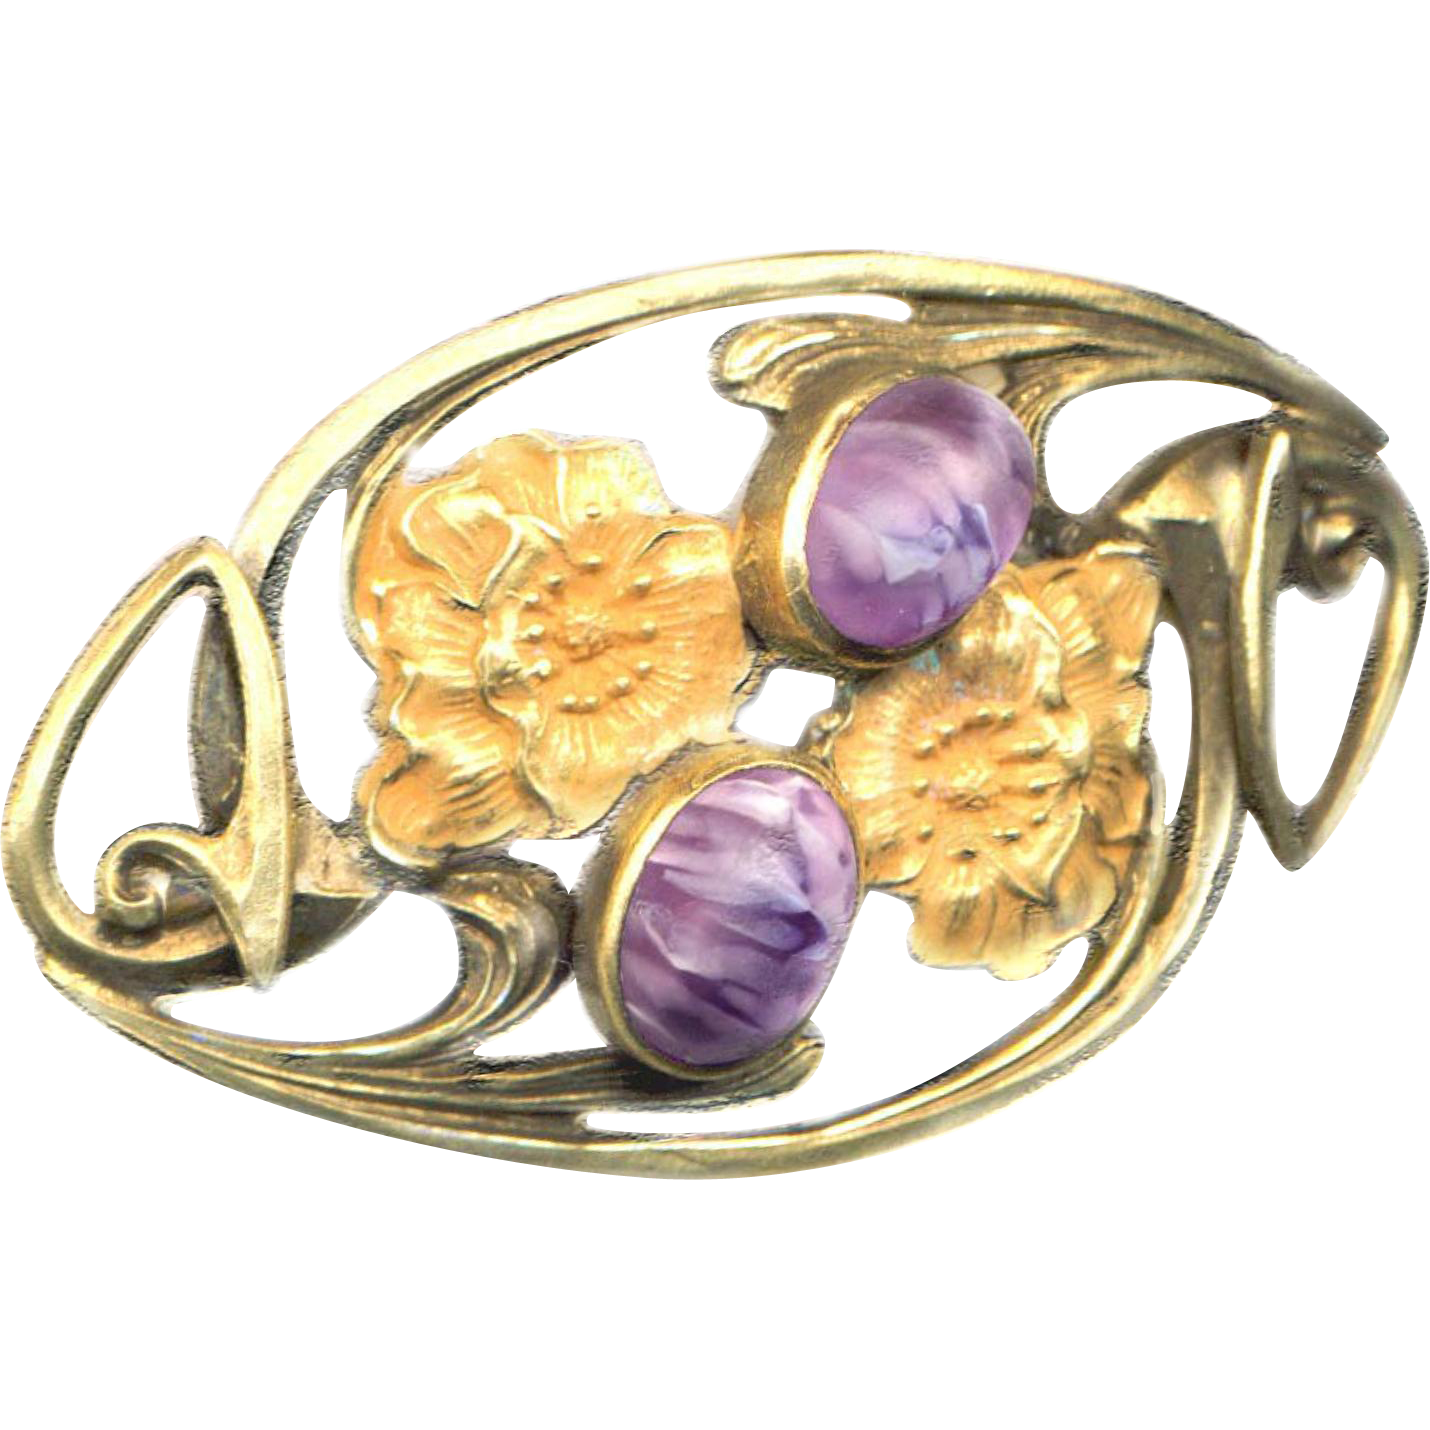 Brooch--Large Vintage Gold-plated Art Nouveau Entrelac Vines, Poppies, and Matte Satin Stones